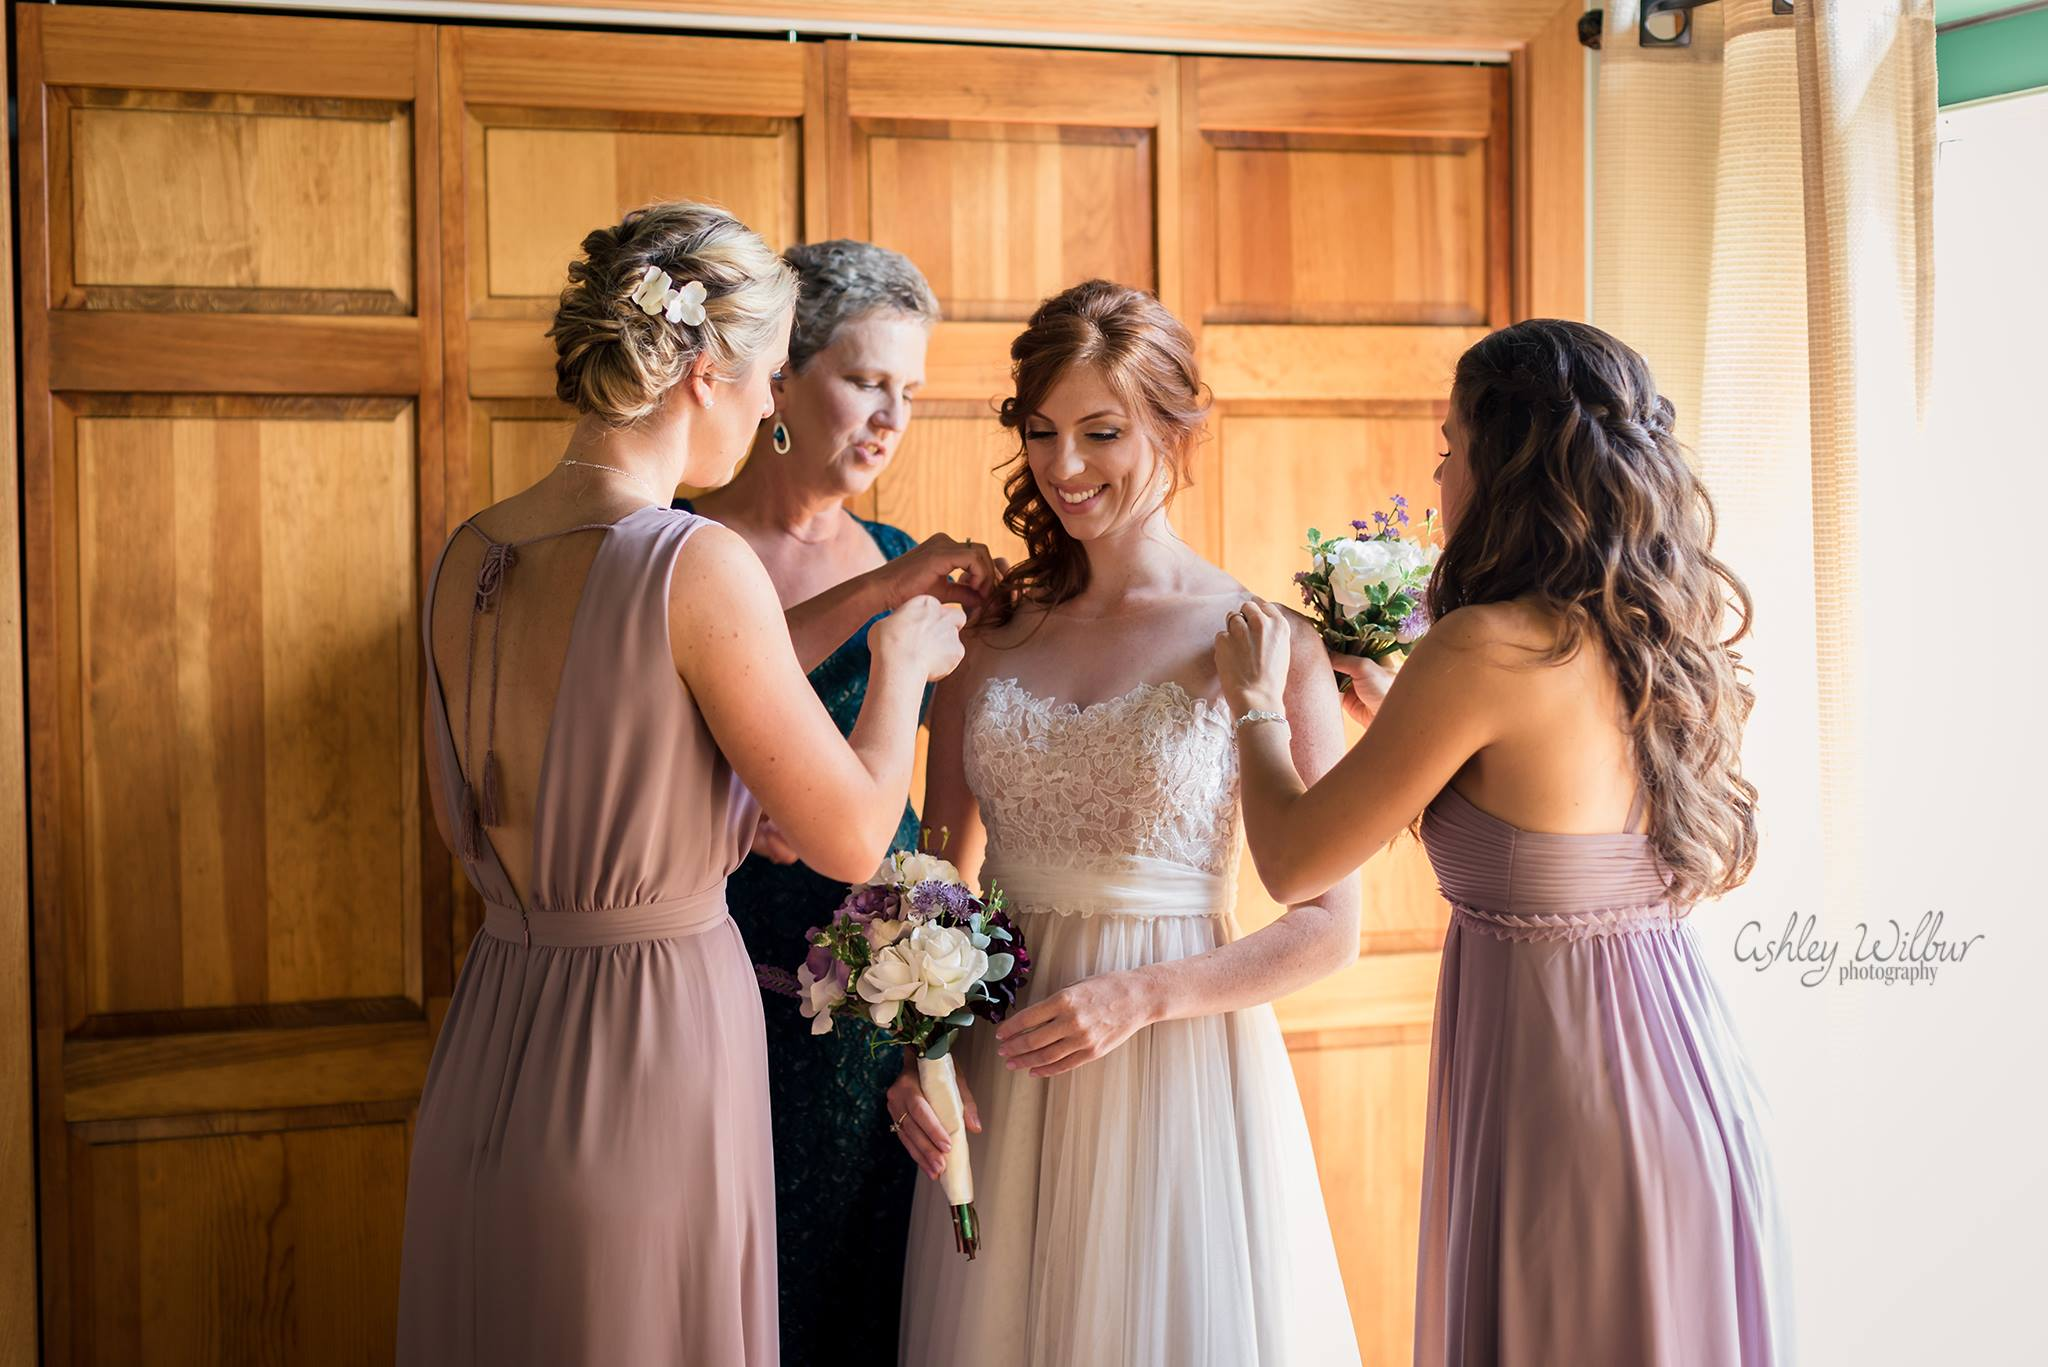 Bride getting in her wedding gown - Saratoga Lake, NY Wedding